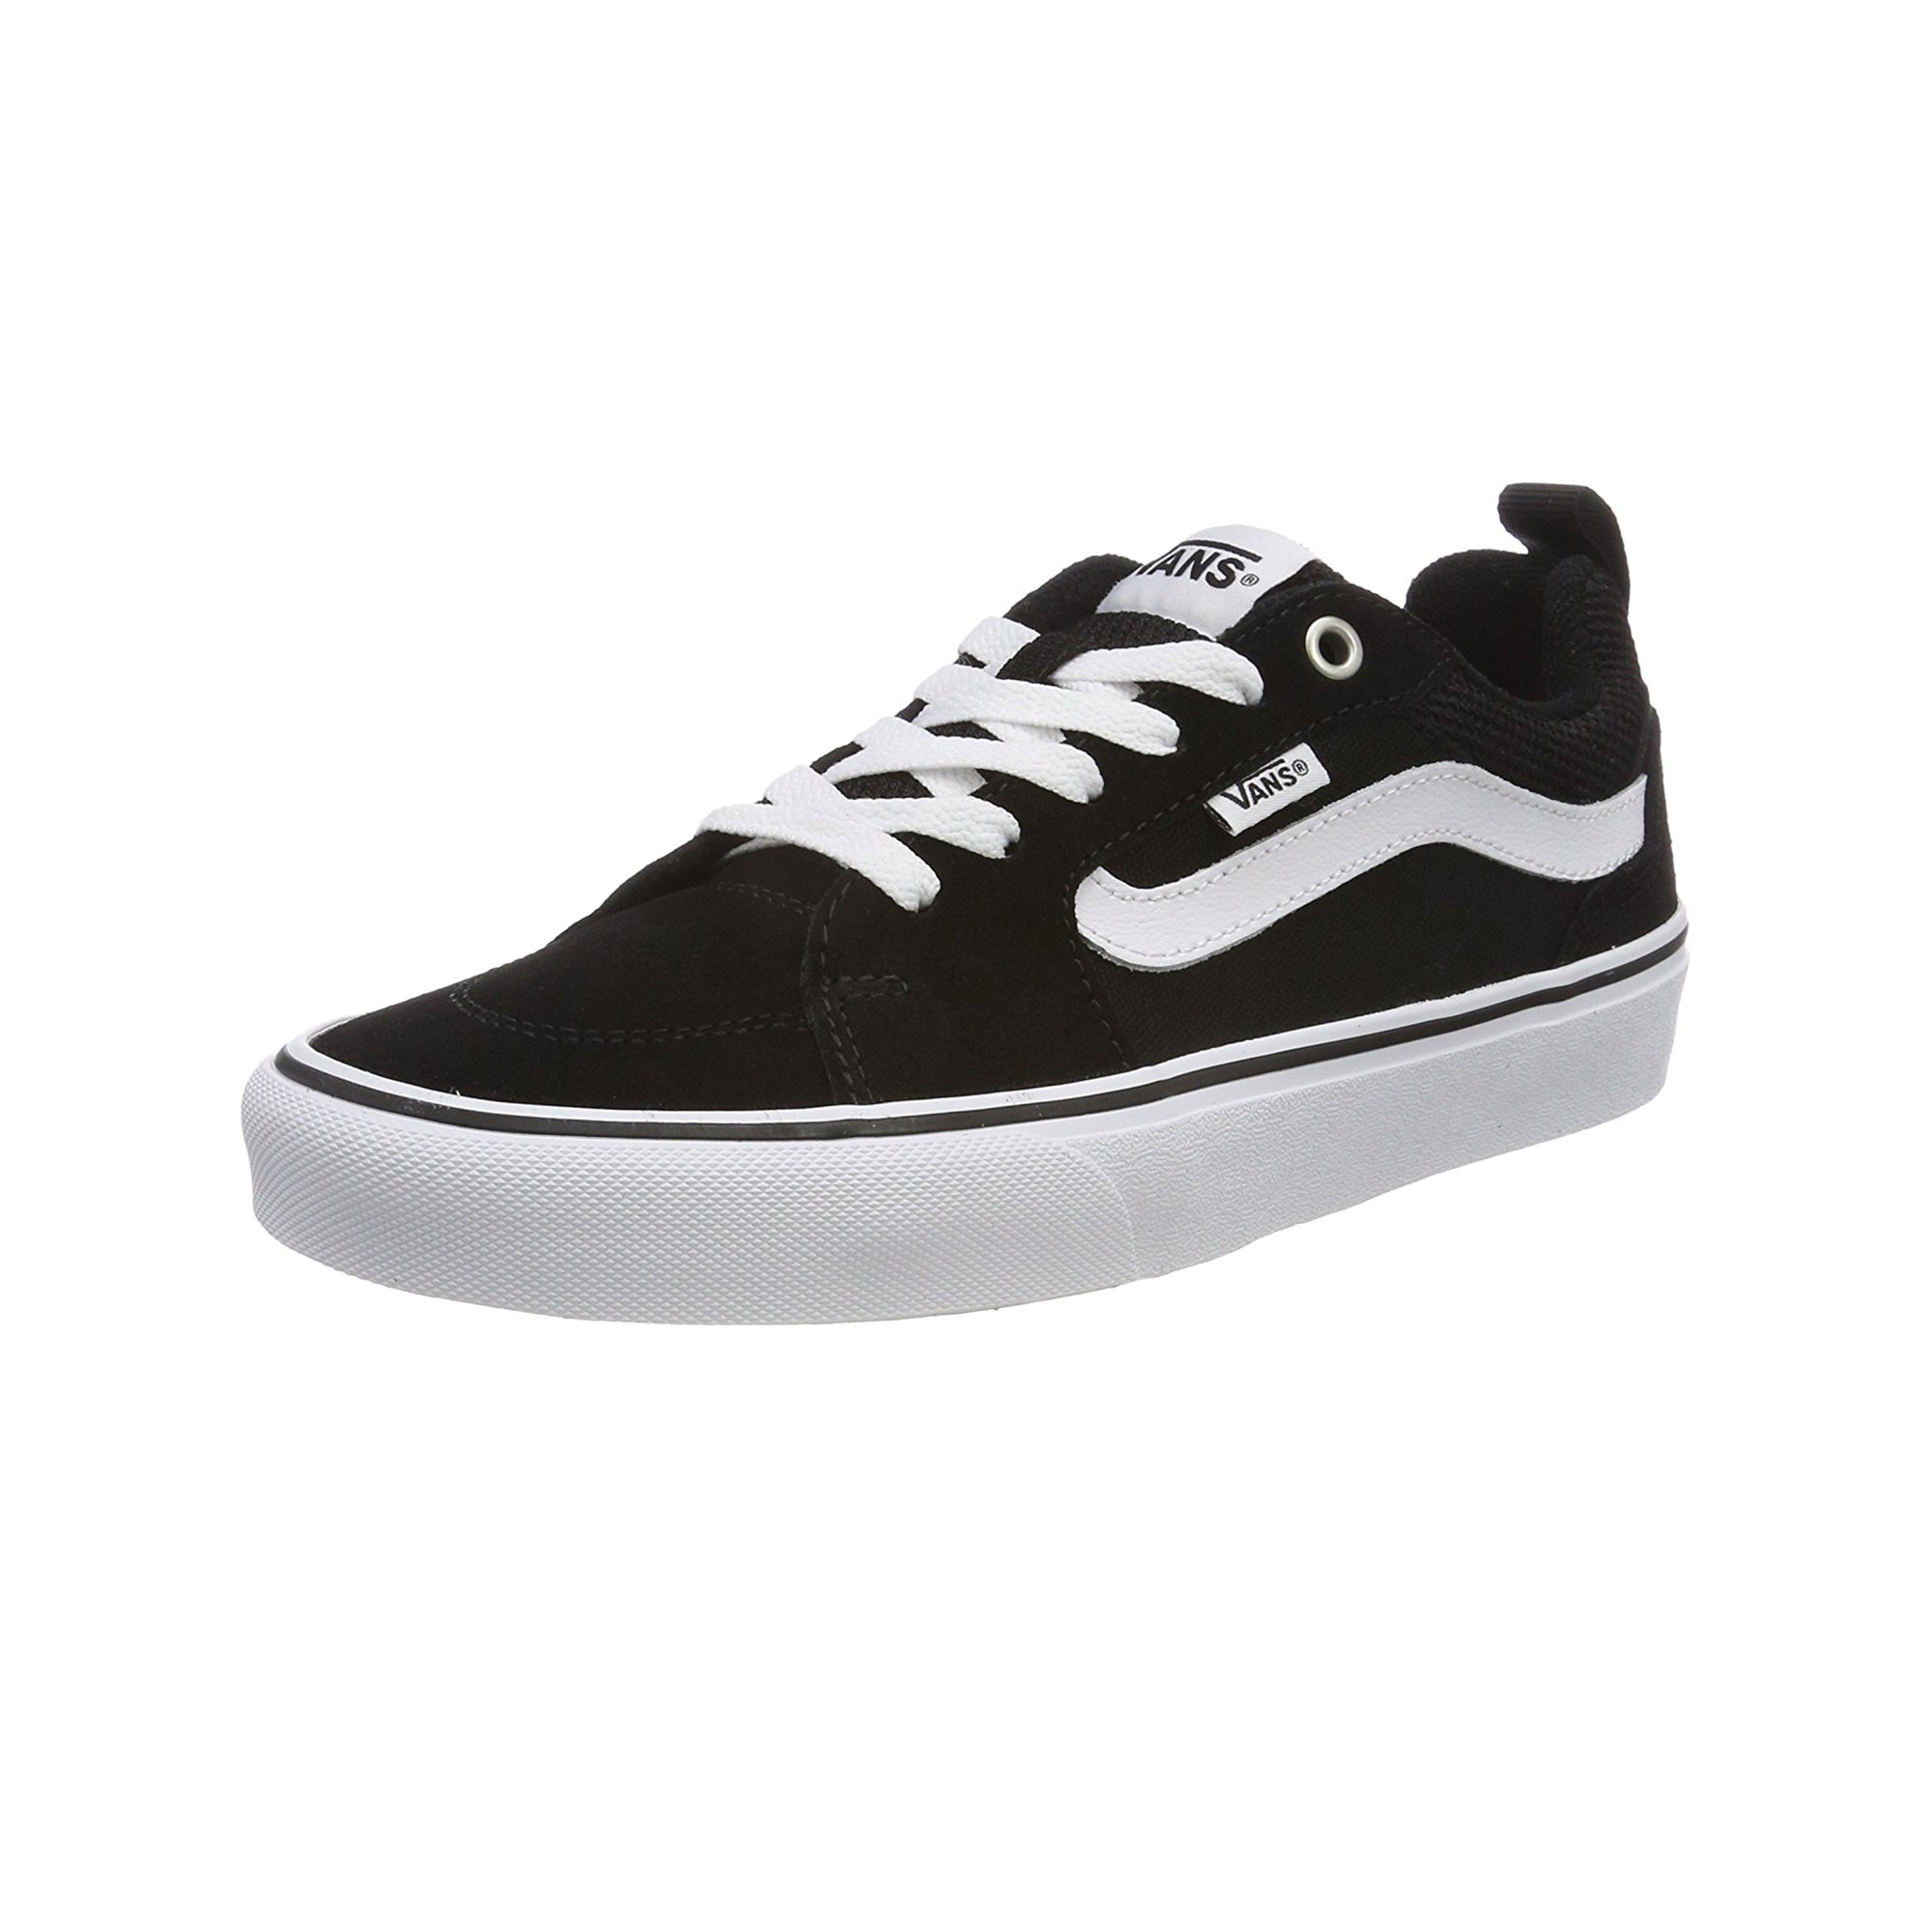 8249b3d971 Vans Men s Filmore Suede Shoes Black White